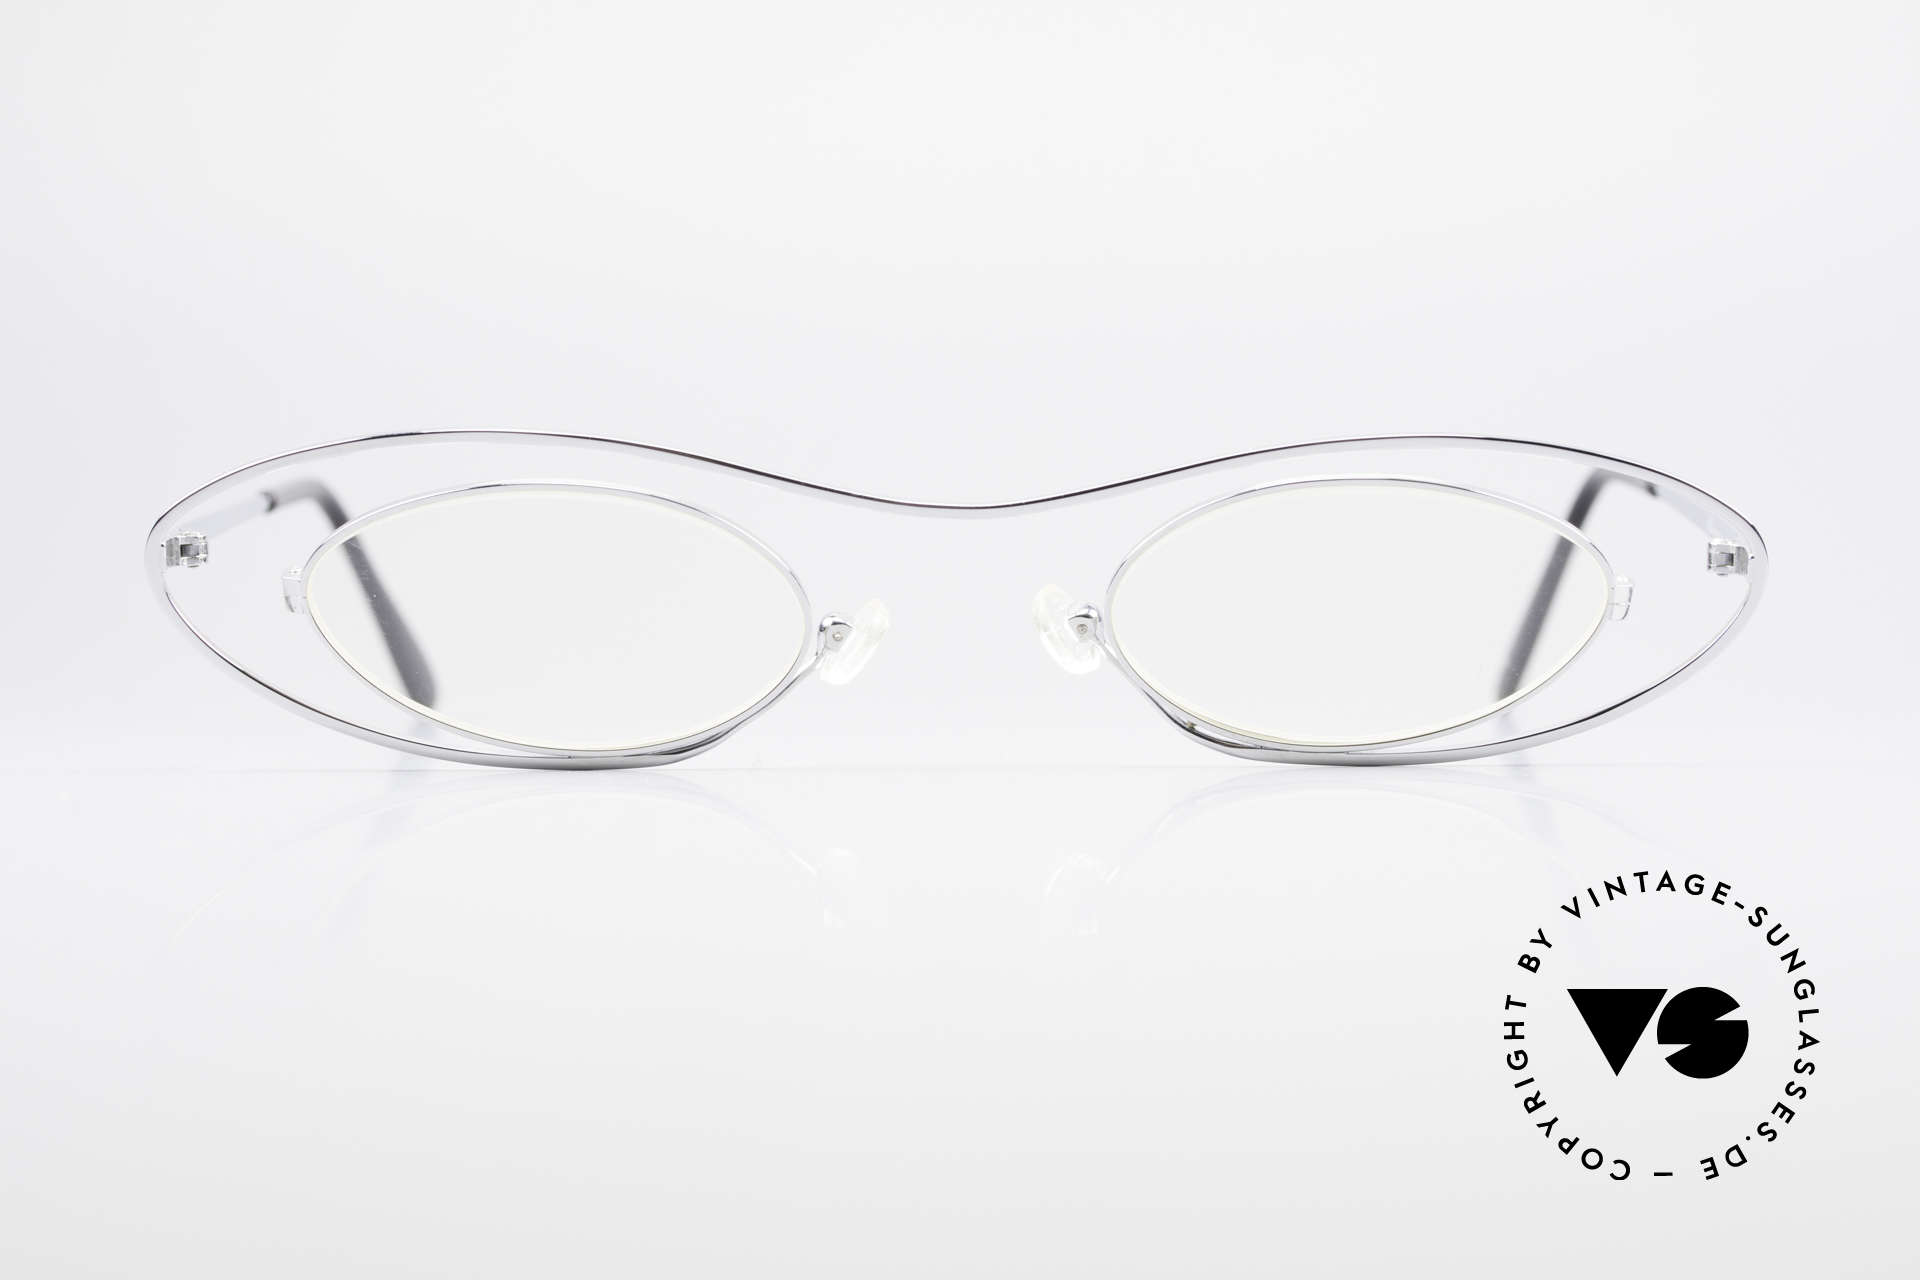 Theo Belgium Mama Vintage Glasses For Mama, founded in 1989 as 'opposite pole' to the 'mainstream', Made for Women